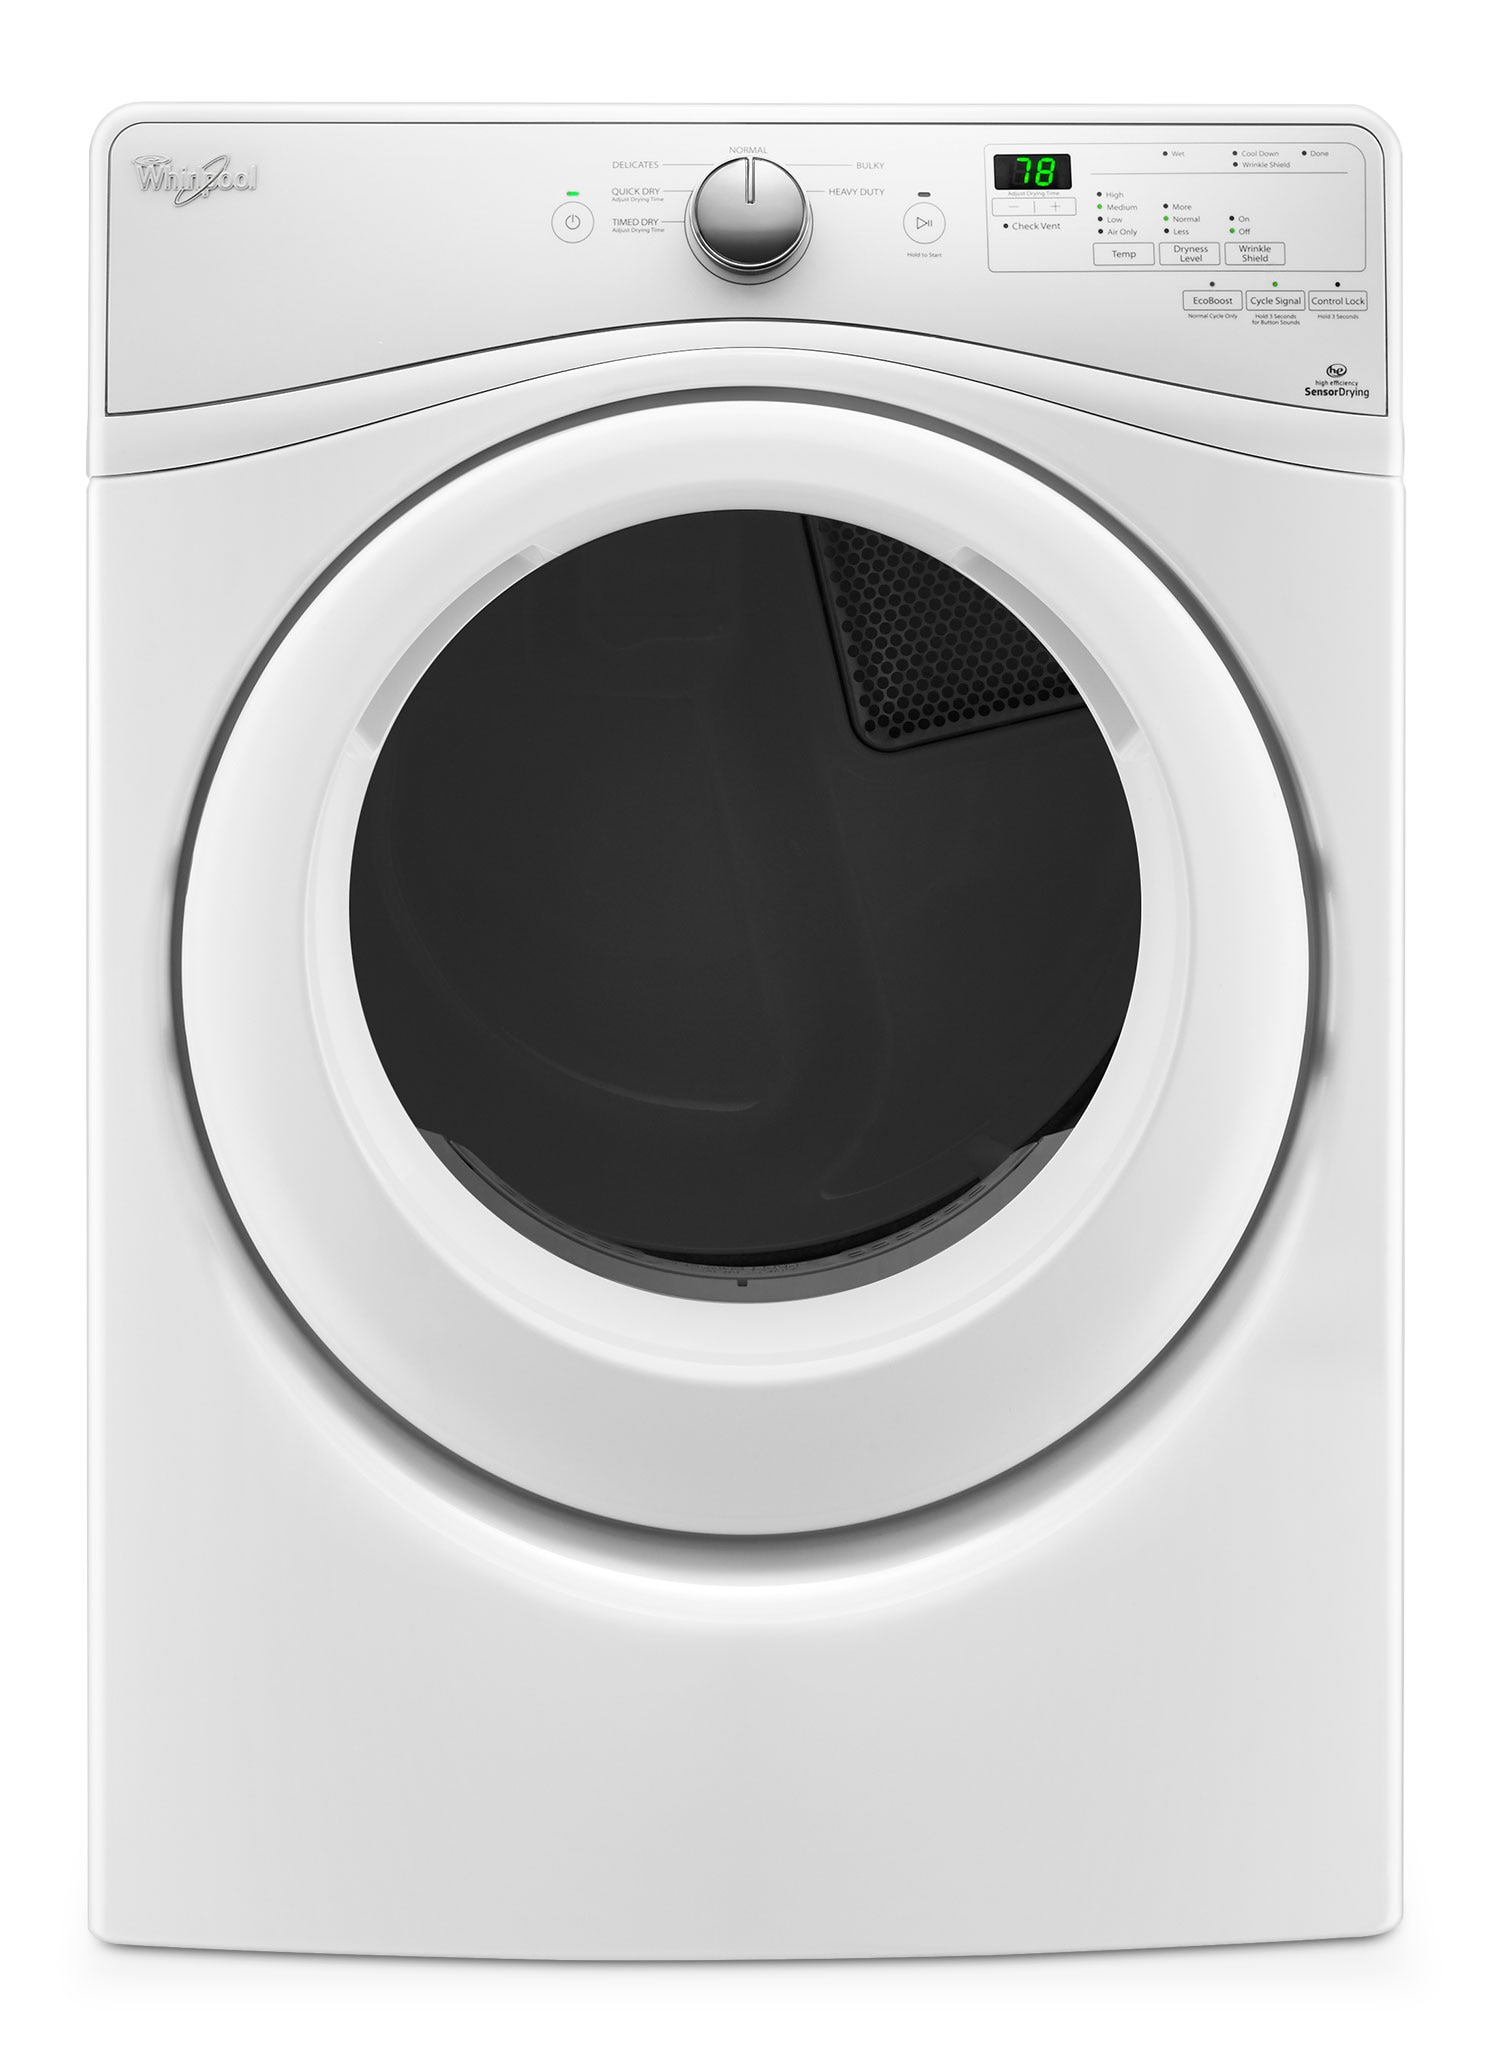 Whirlpool 7 4 cu ft electric dryer ywed75hefw the brick for Whirlpool washer motor price